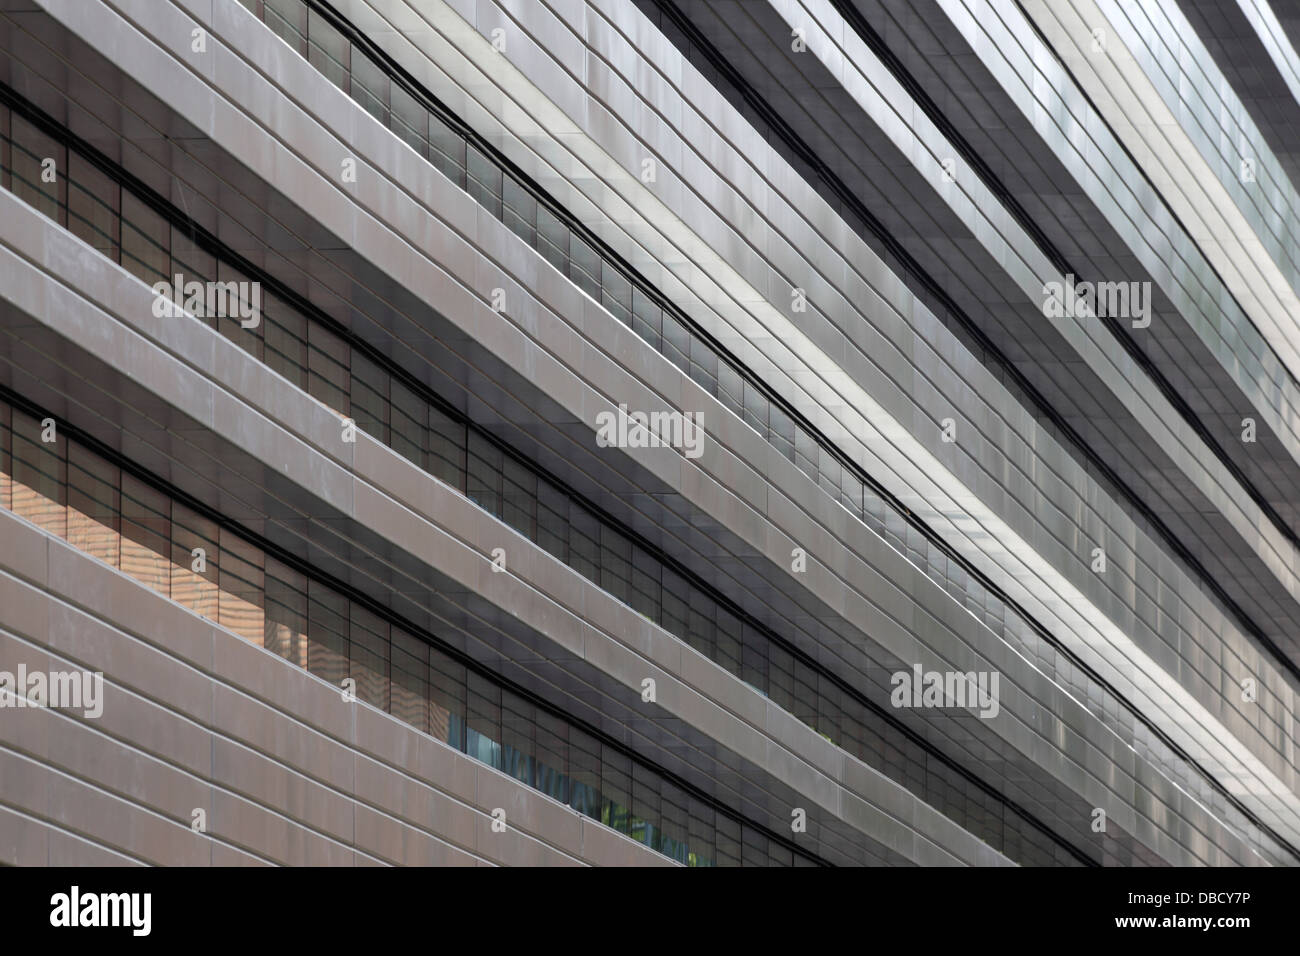 Chasse Park Housing, Breda, Netherlands. Architect: OMA, 2001. Detail of apartment block facade, designed by various - Stock Image